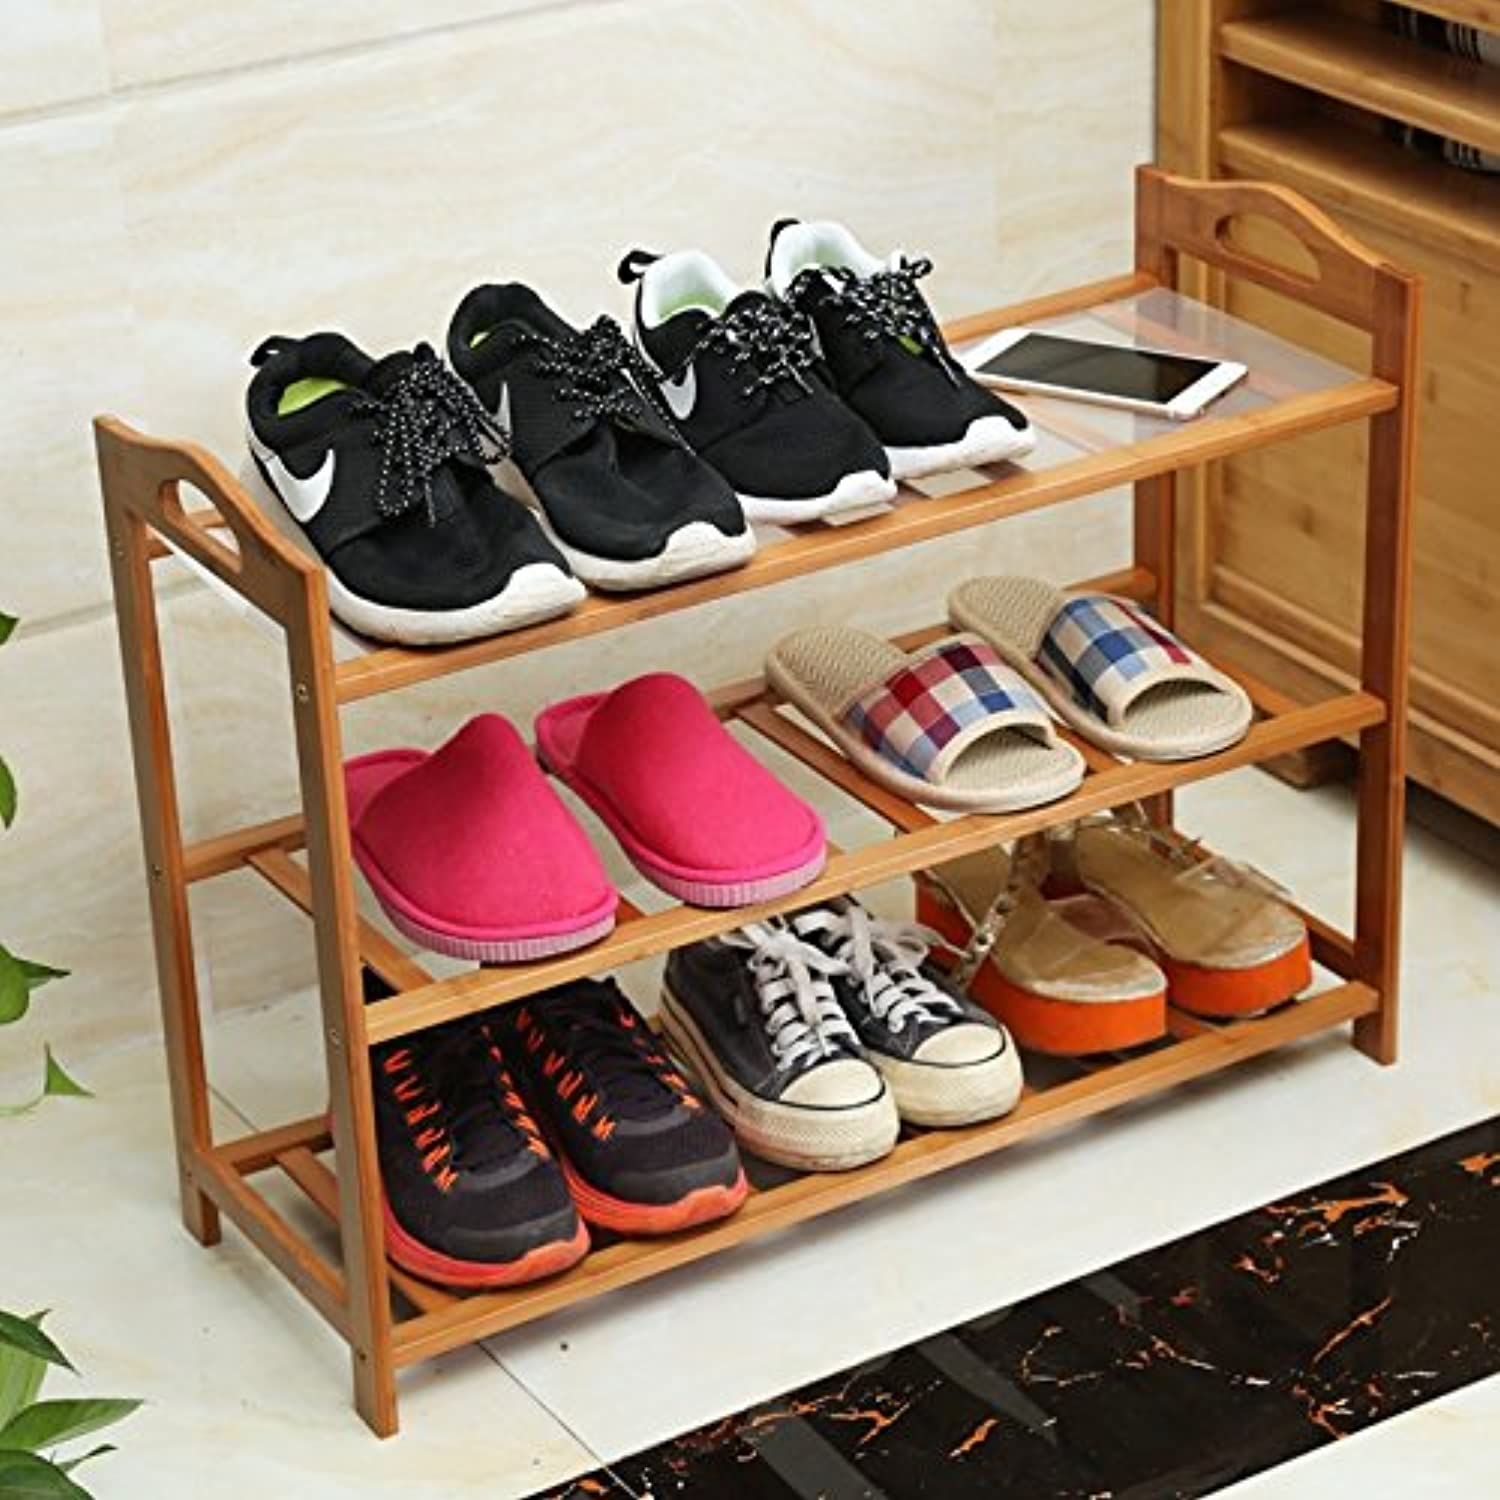 shoes Bench Organizing Rack Nanzhu shoes Rack Simple Multi - Storey Shelves dustproof Household Shelves Simple Modern Assembly shoes Cabinet (color   A, Size   68cm)